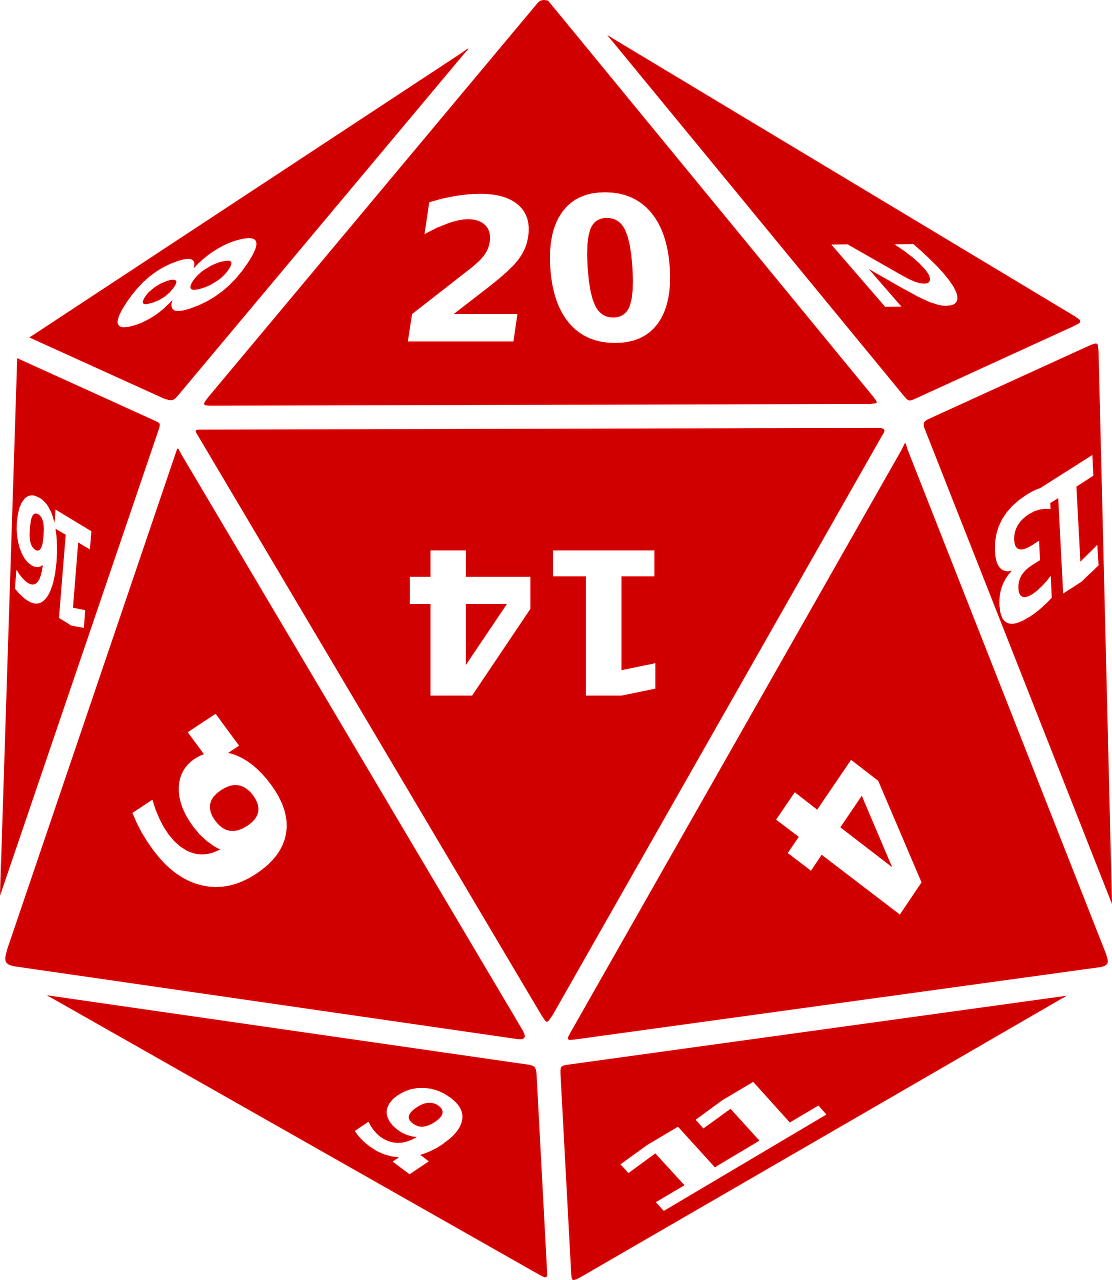 d20-red